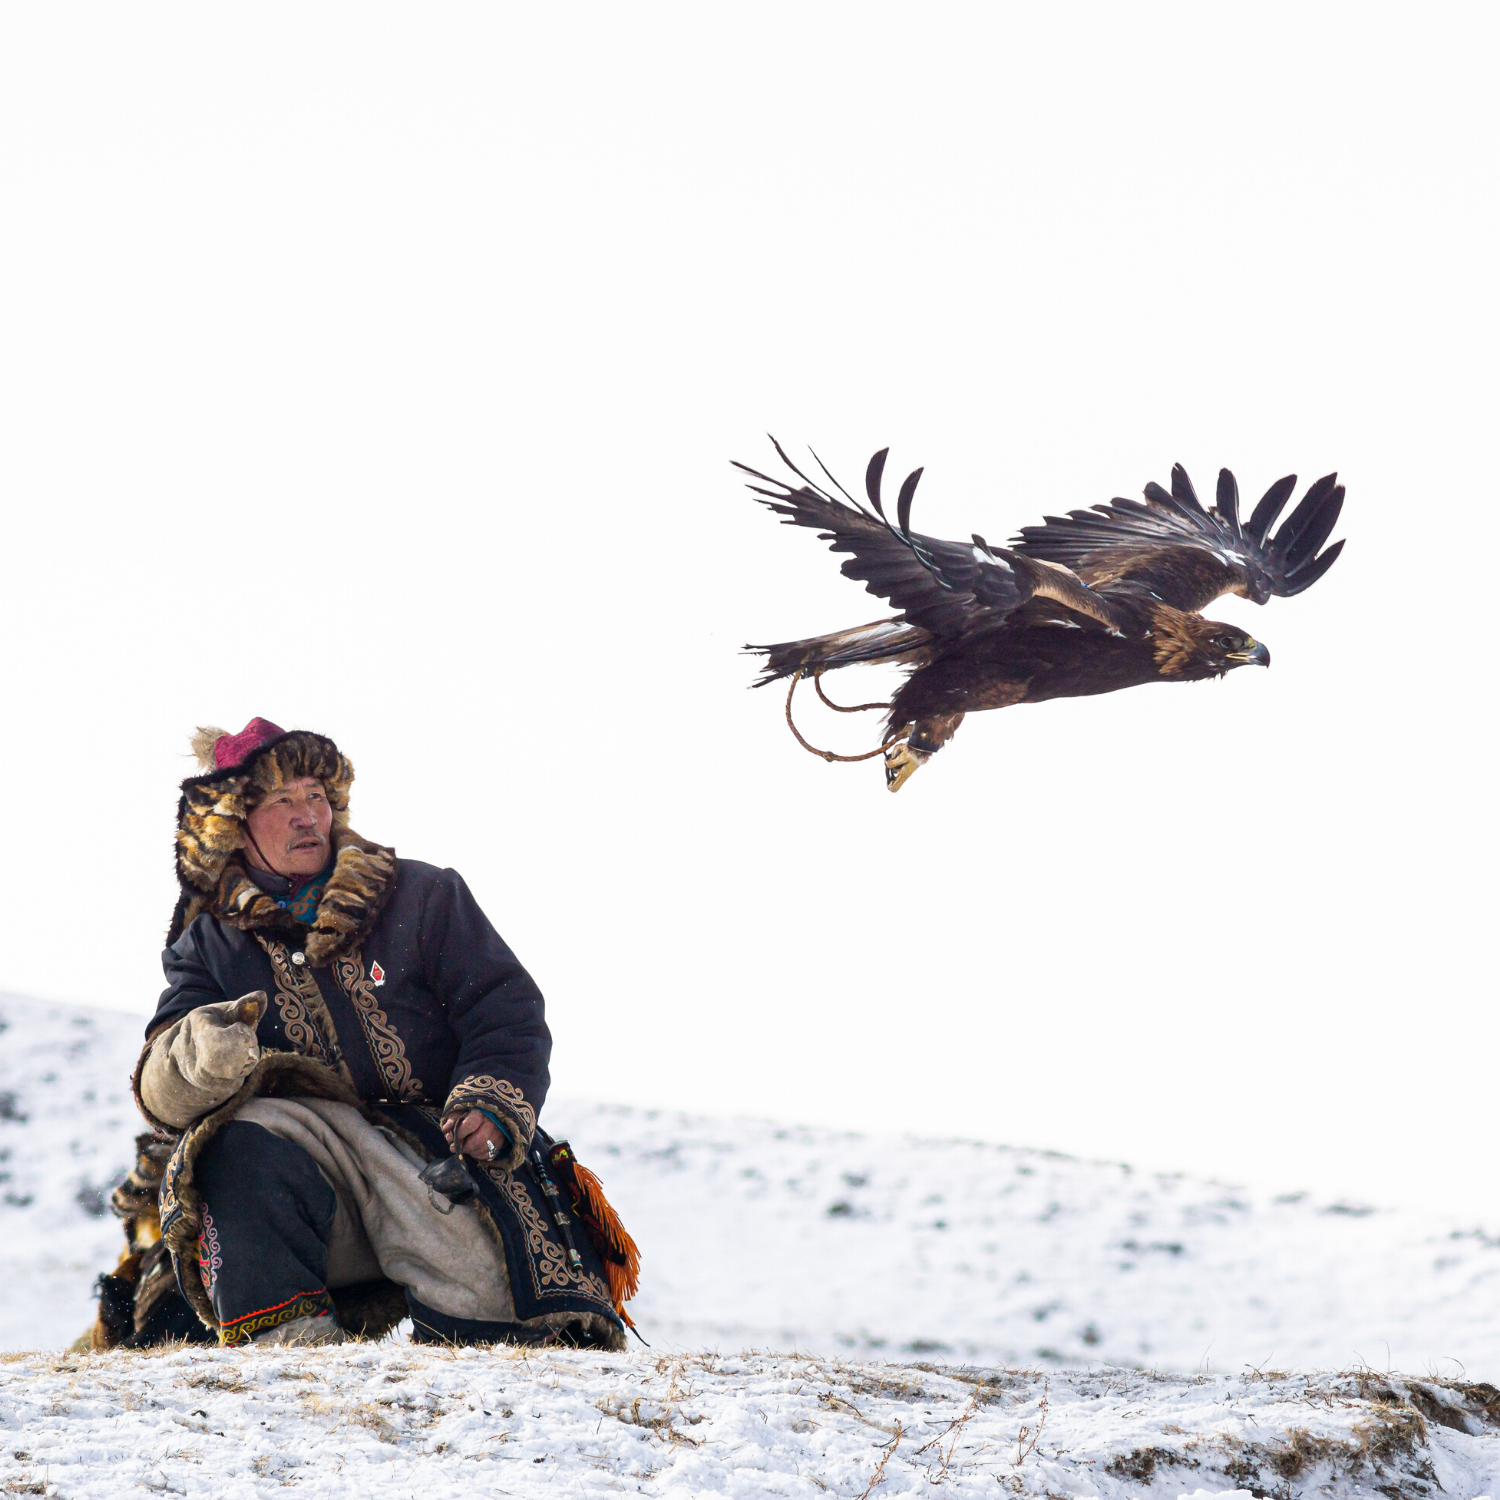 PHOTOGRAPHY & VIDEOGRAPHY IN MONGOLIA